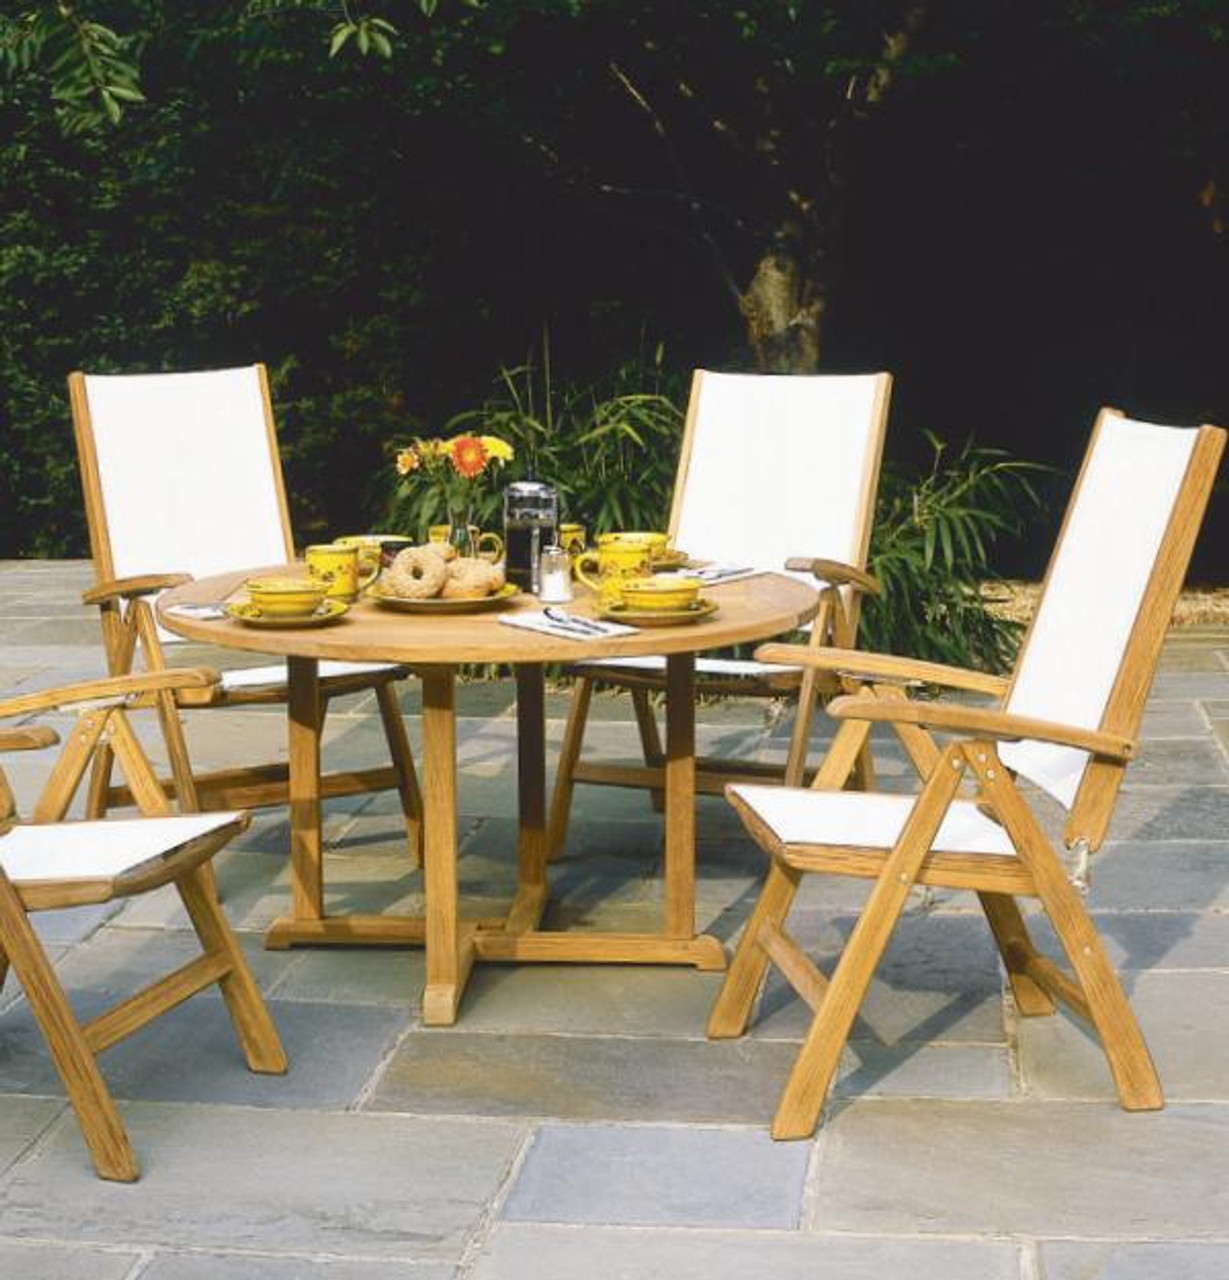 Outstanding St Tropez Dining Collection Kingsley Bate Outdoor Patio Pdpeps Interior Chair Design Pdpepsorg